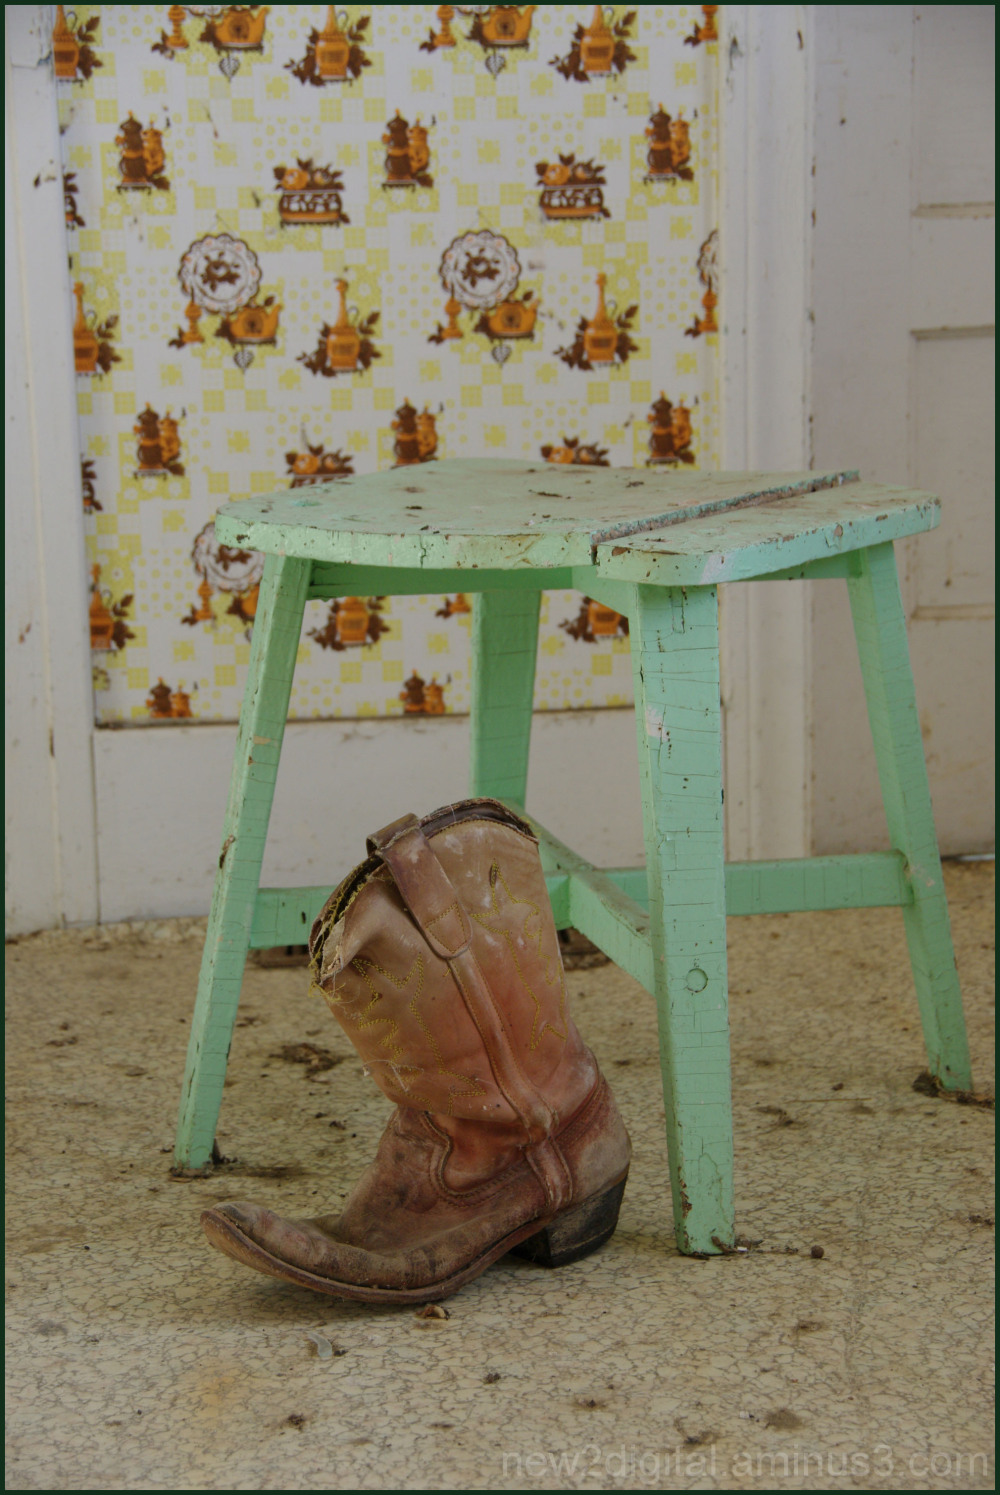 The Boot and the Stool